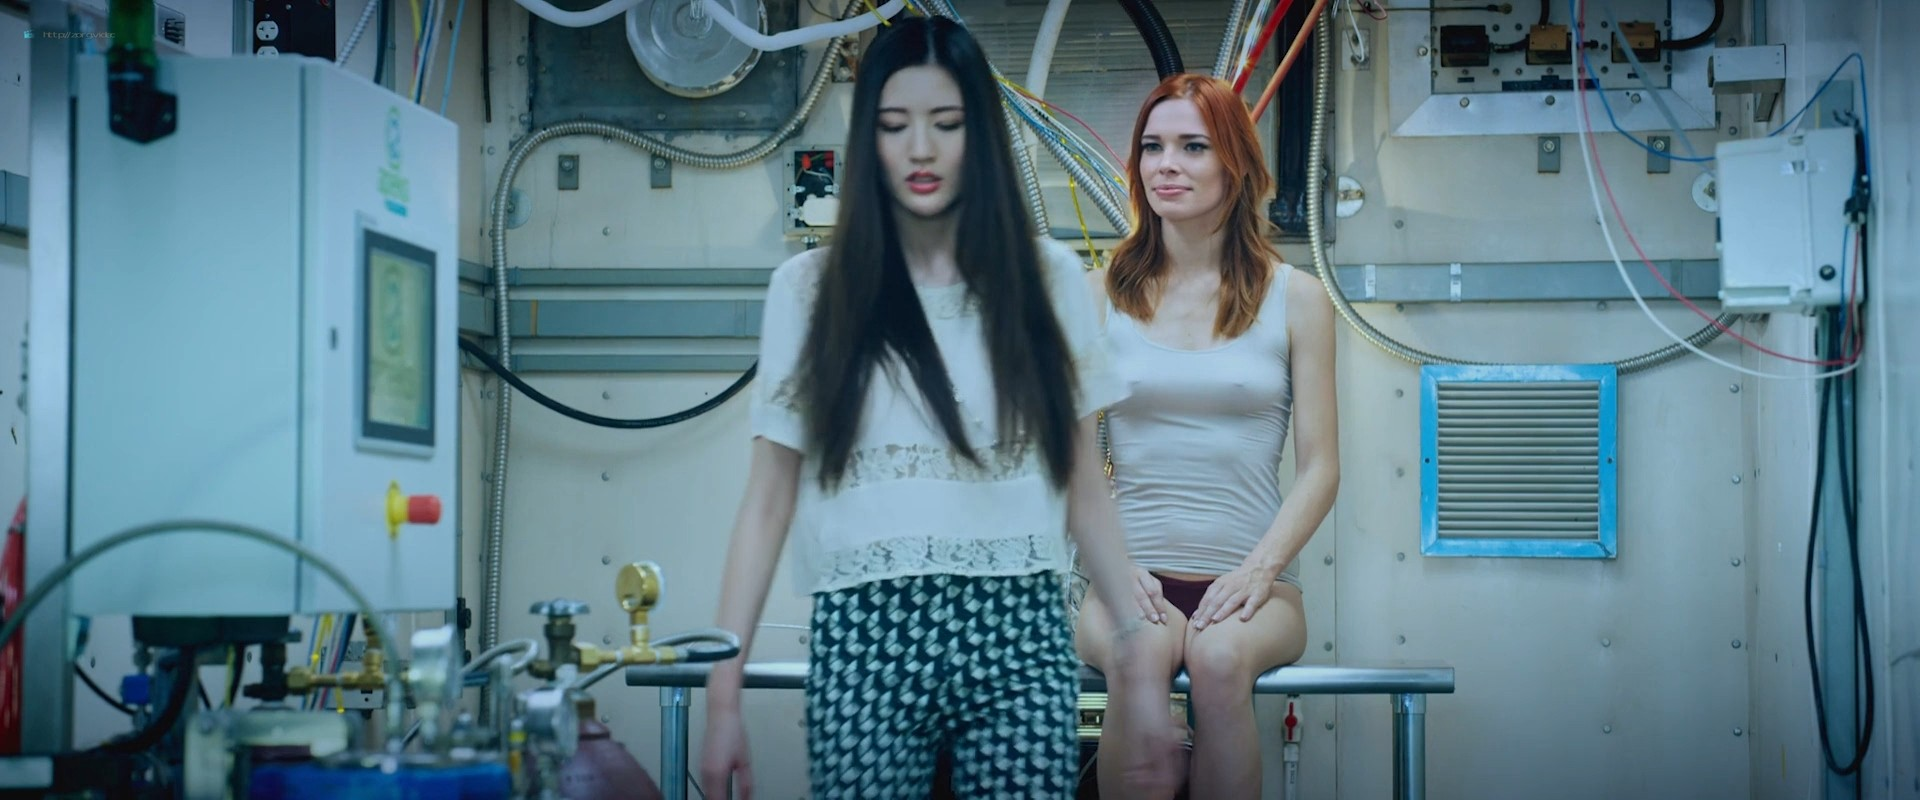 Chloe Dykstra nude topless and hot Ana Foxx and others hot - Diminuendo (2018) HD 1080p Web (11)